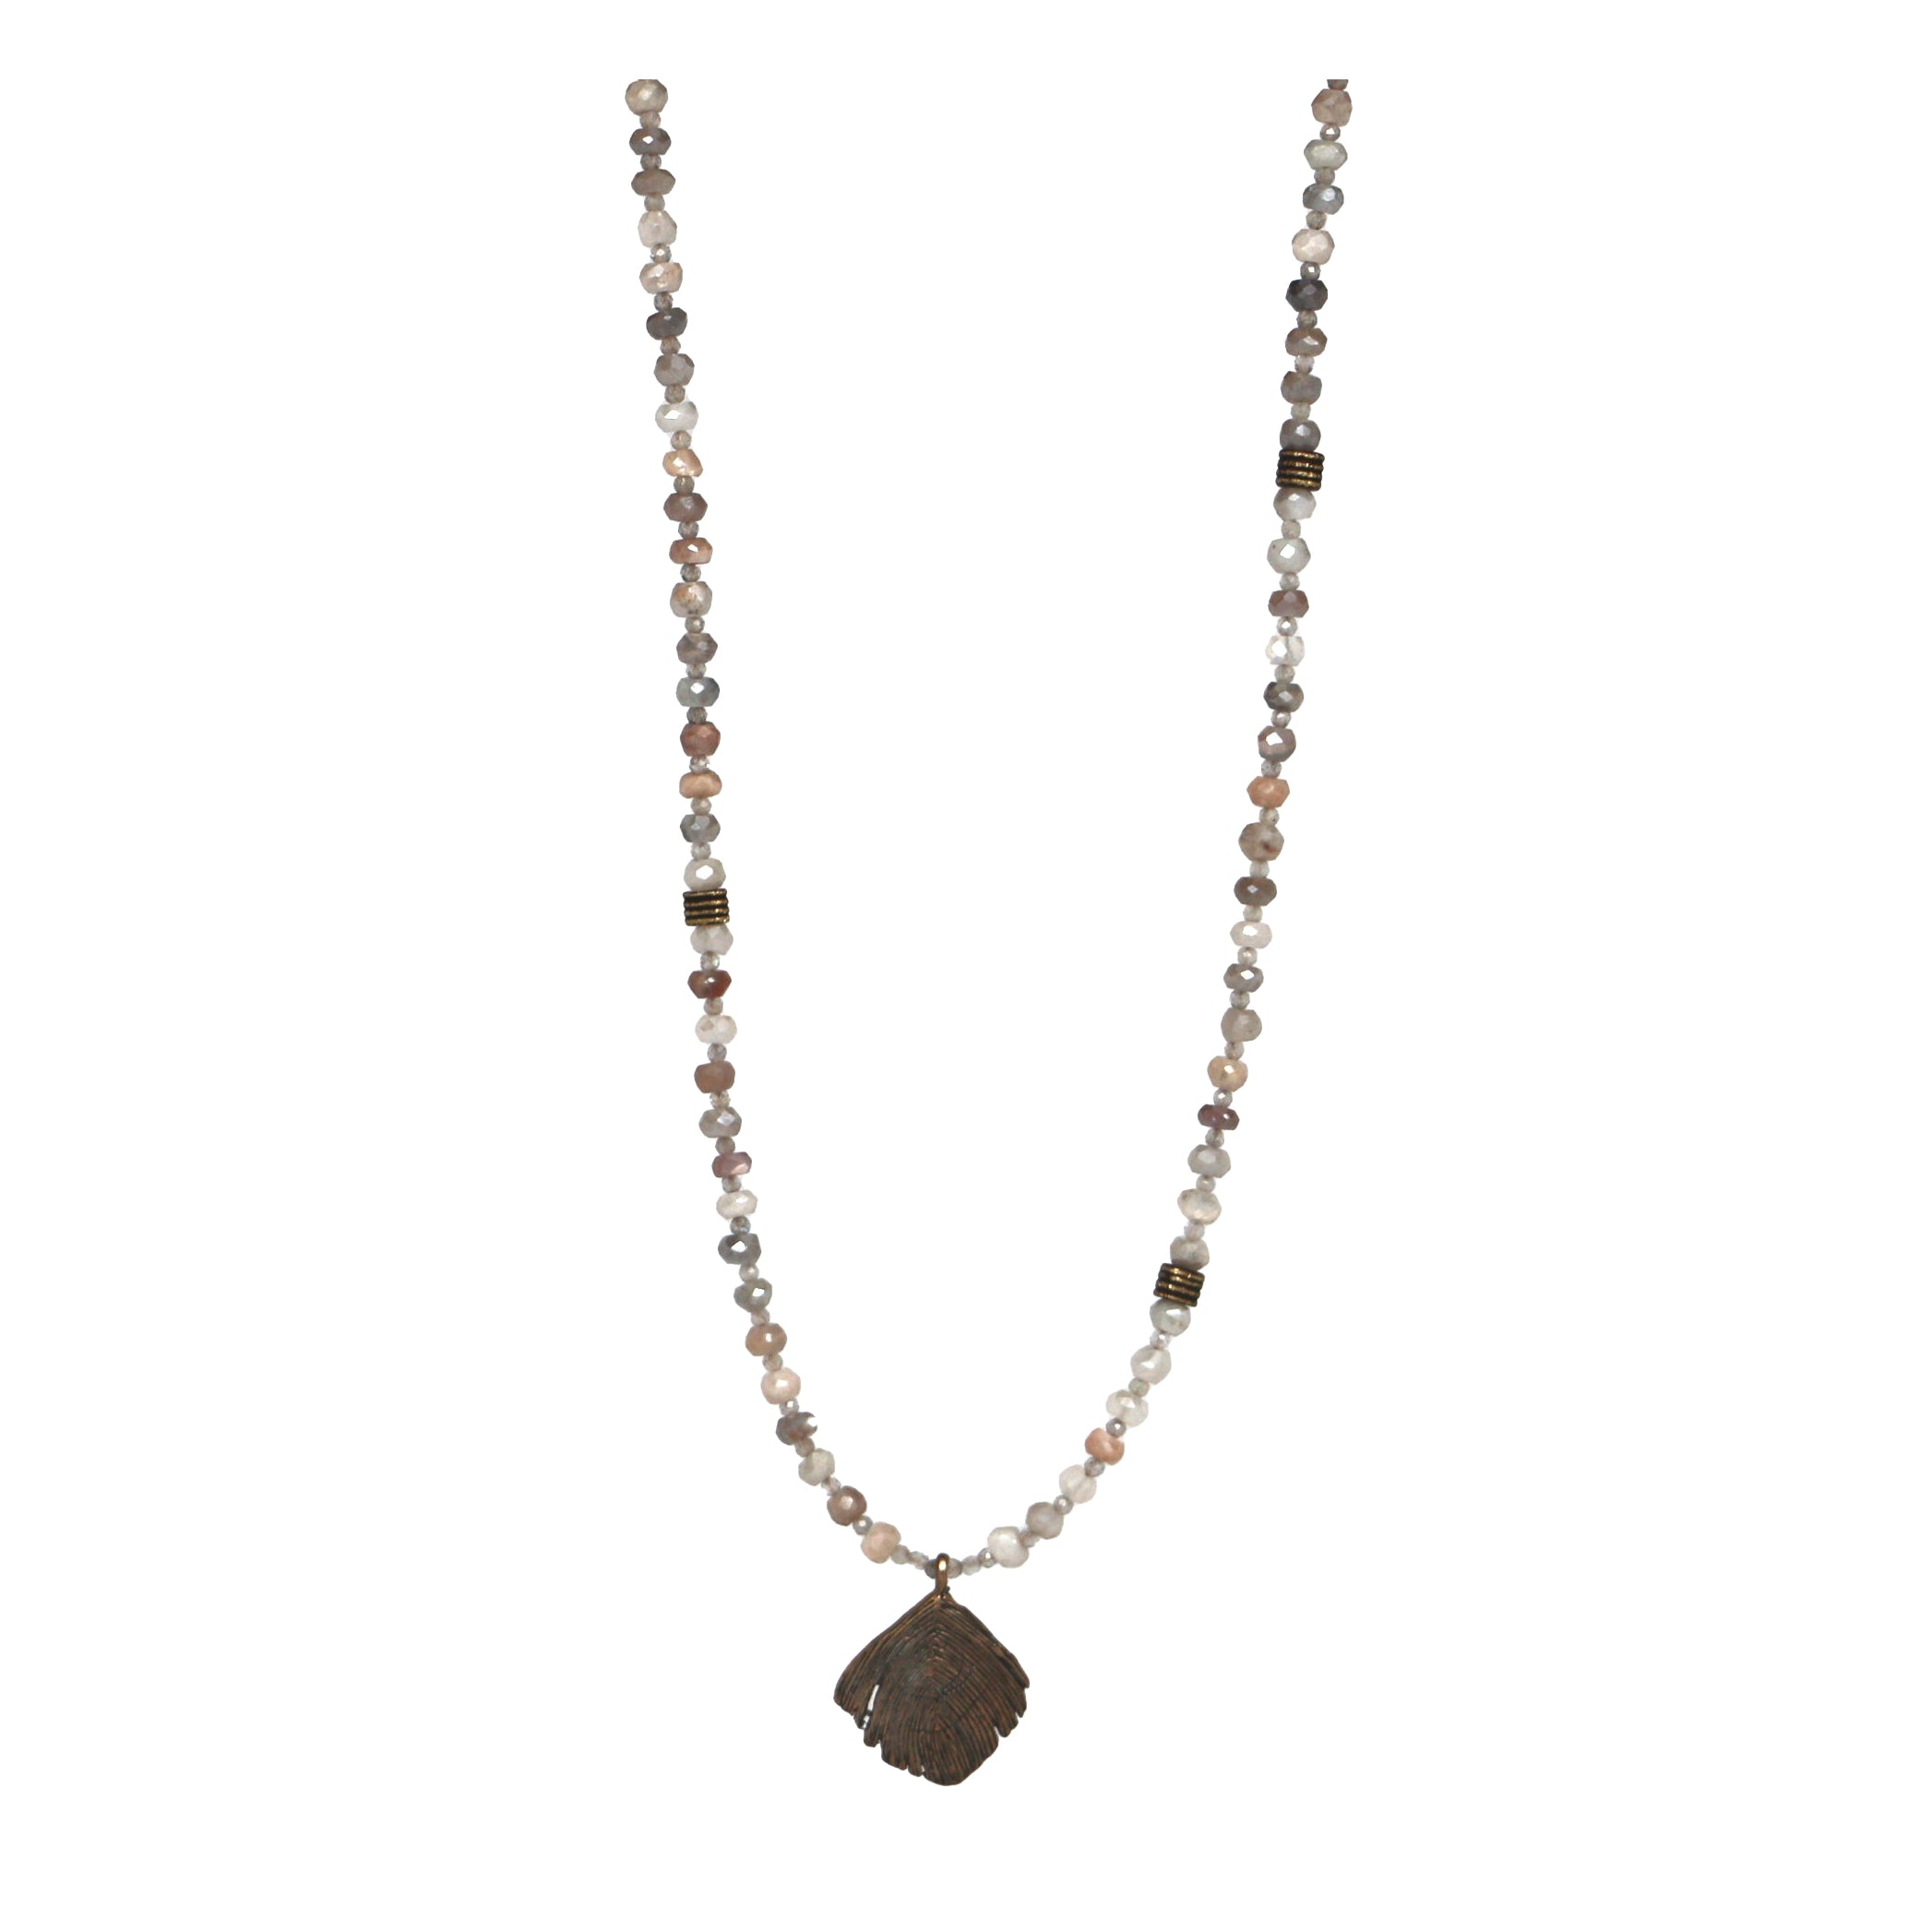 Ute Necklace - Mystic Grey Moonstone